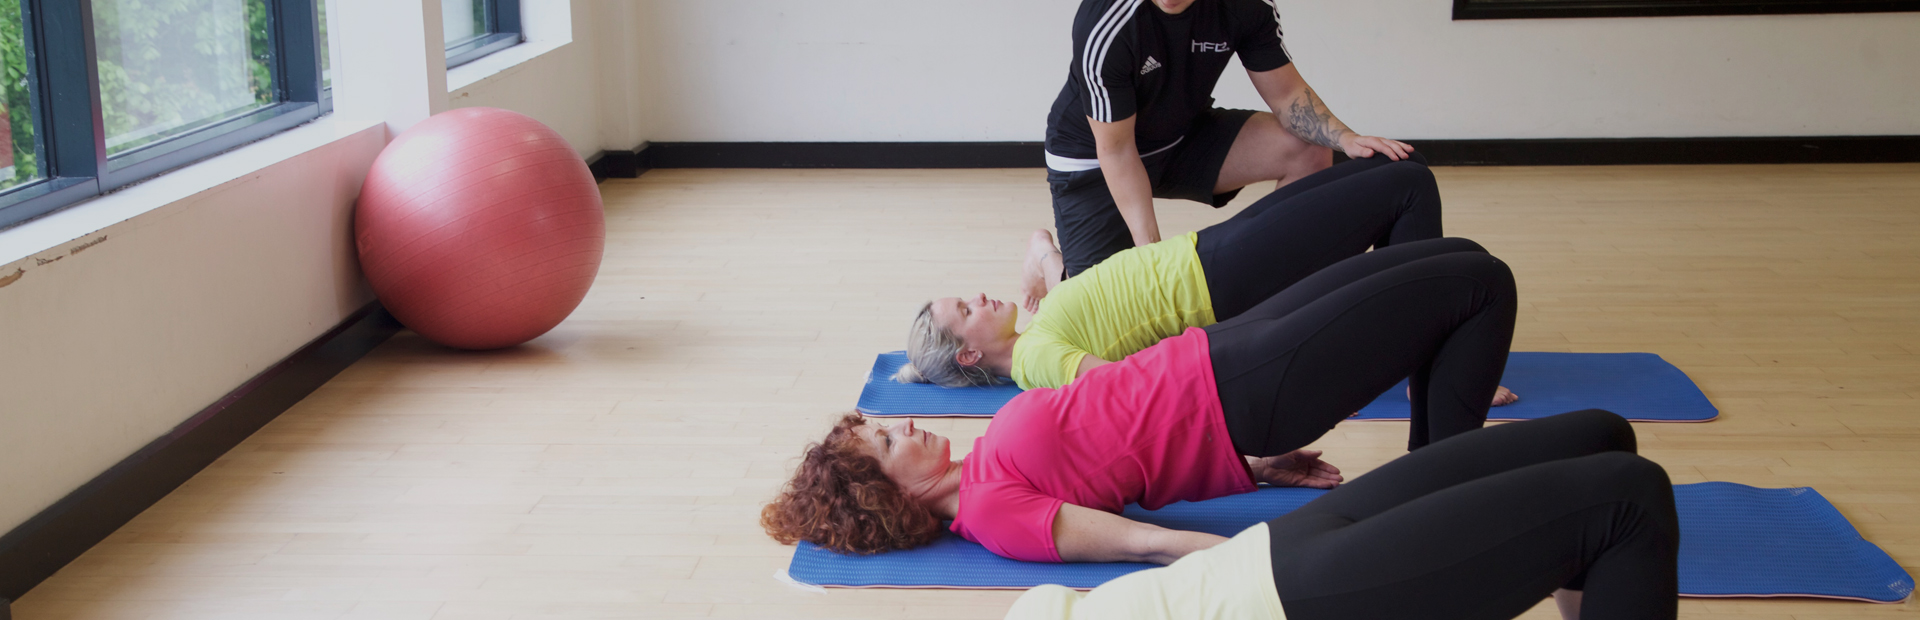 HFE Pilates tutor working on the bridge pose with students